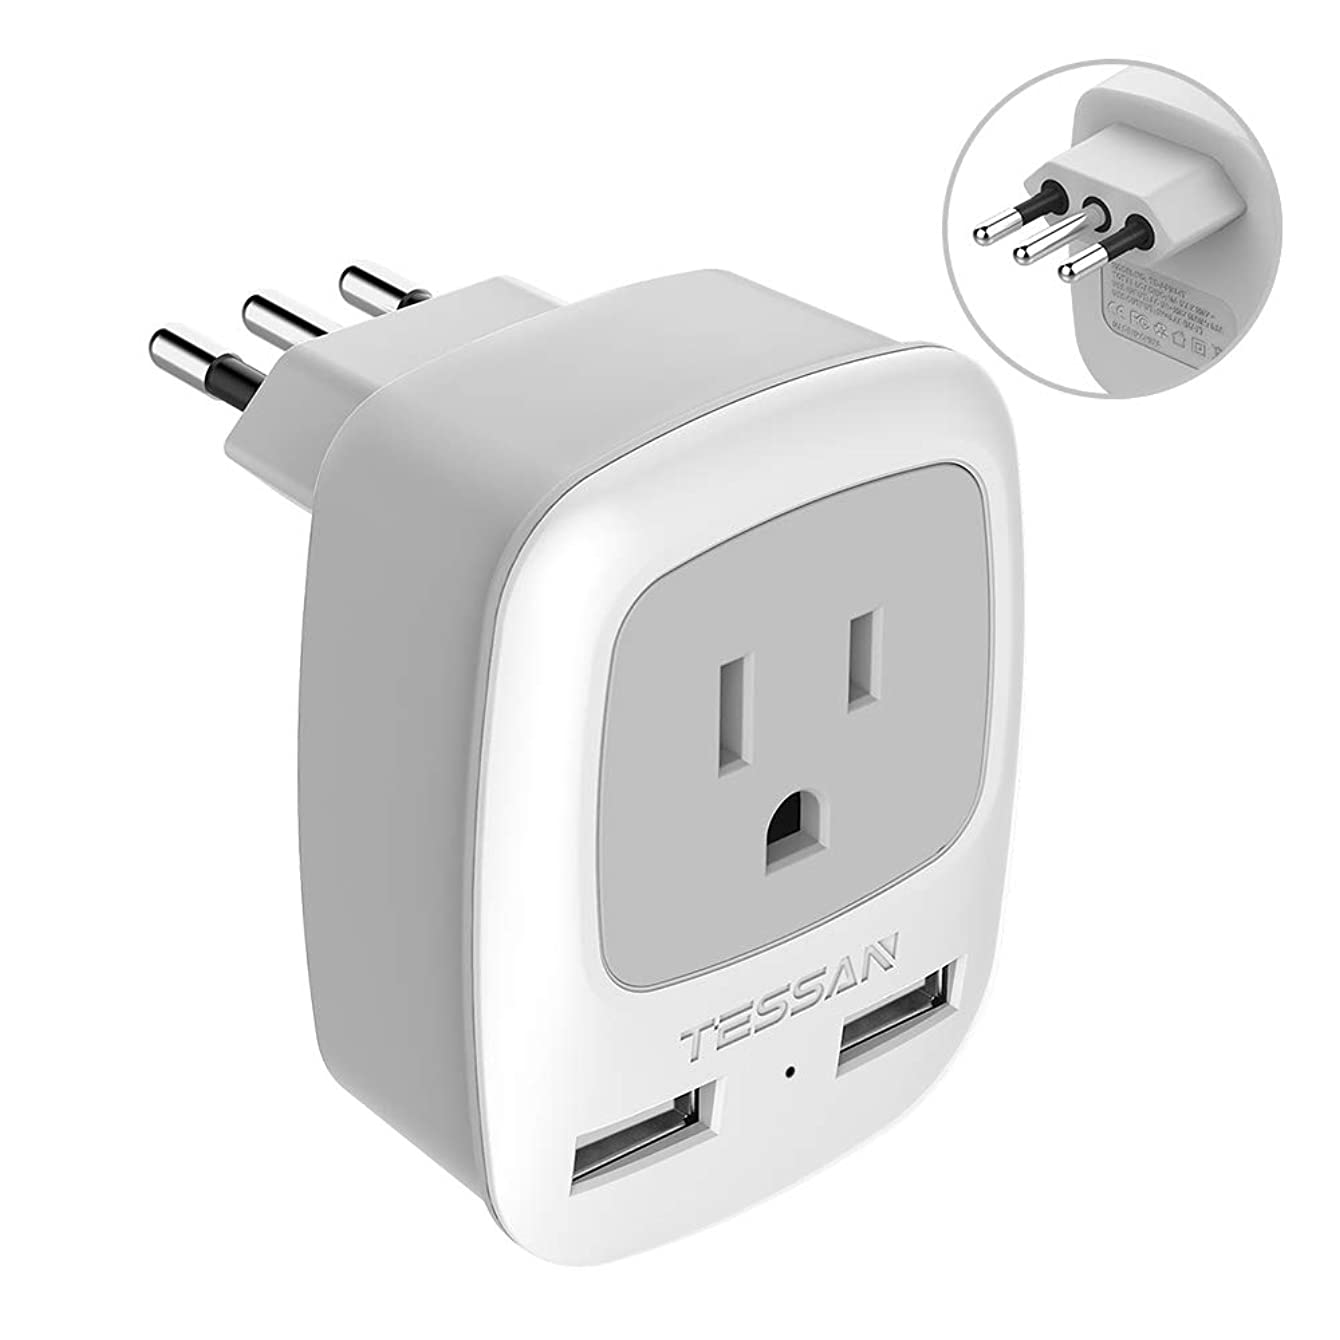 Italy Travel Power Adapter, TESSAN 3 Prong Grounded Plug with Dual USB Charging Ports, 3 in 1 AC Outlet for USA To Italy Uruguay Chile (Type L)